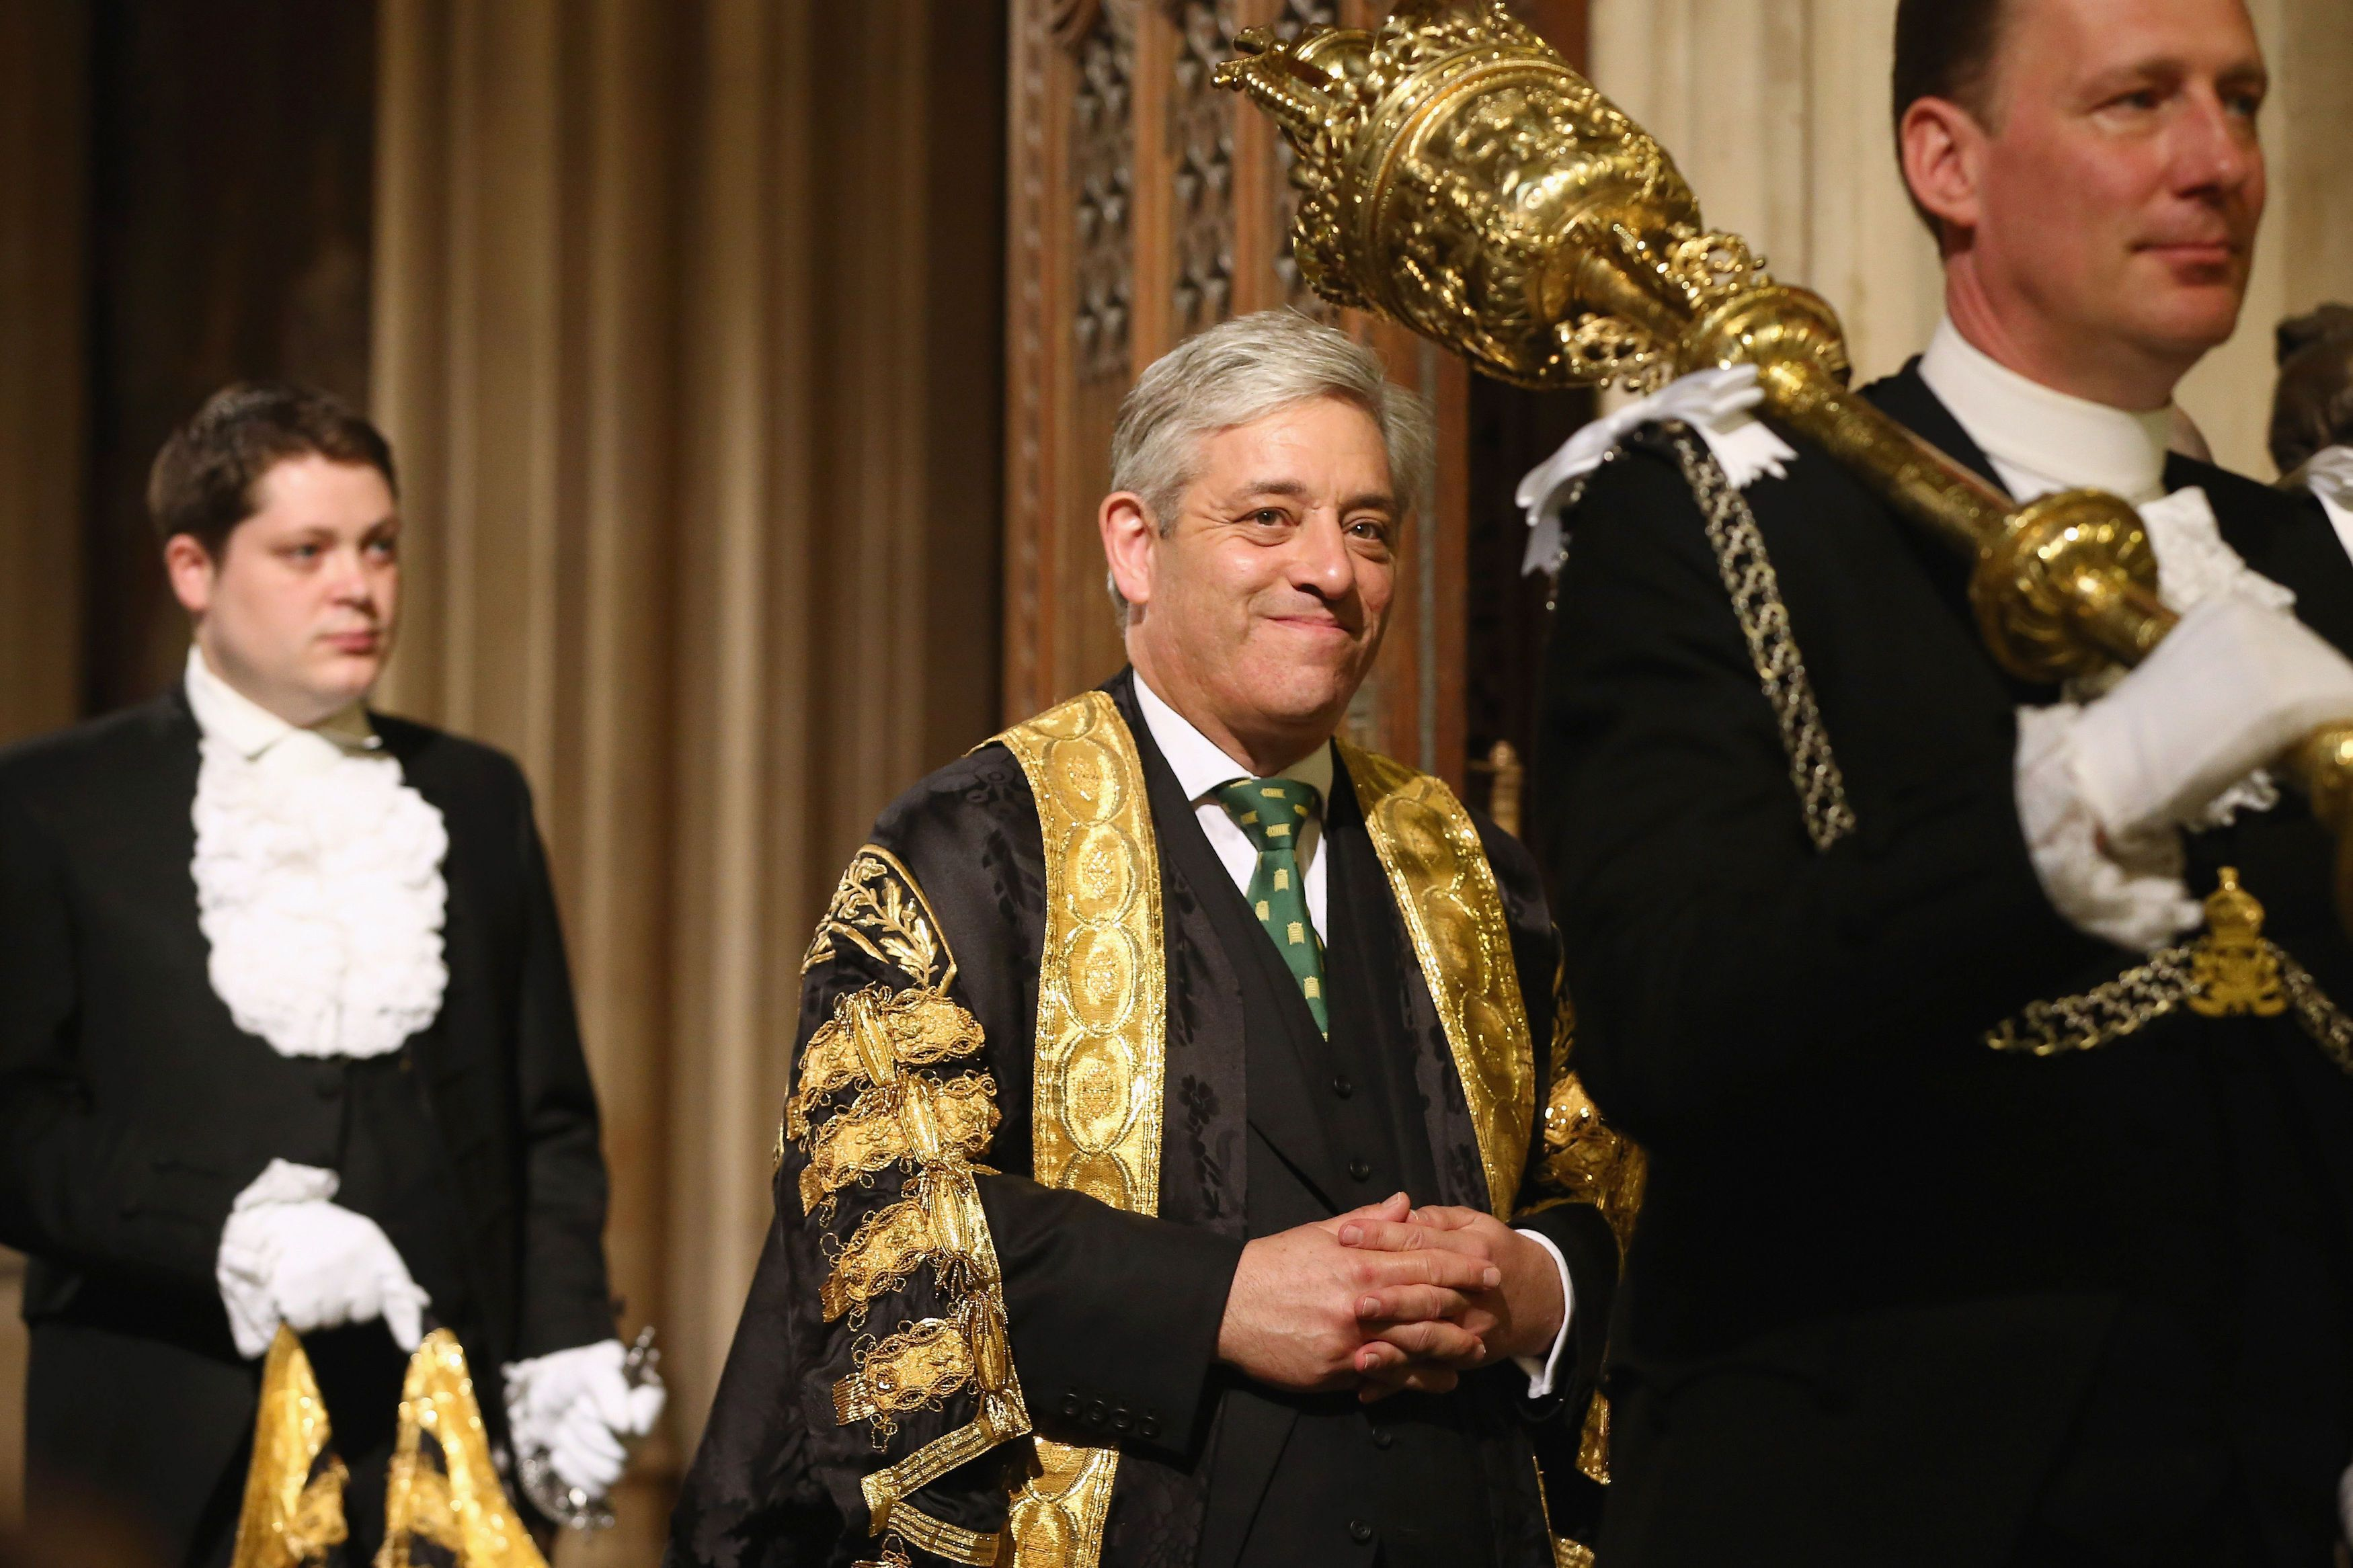 A petition has been launched calling for House of Commons Speaker John Bercow's